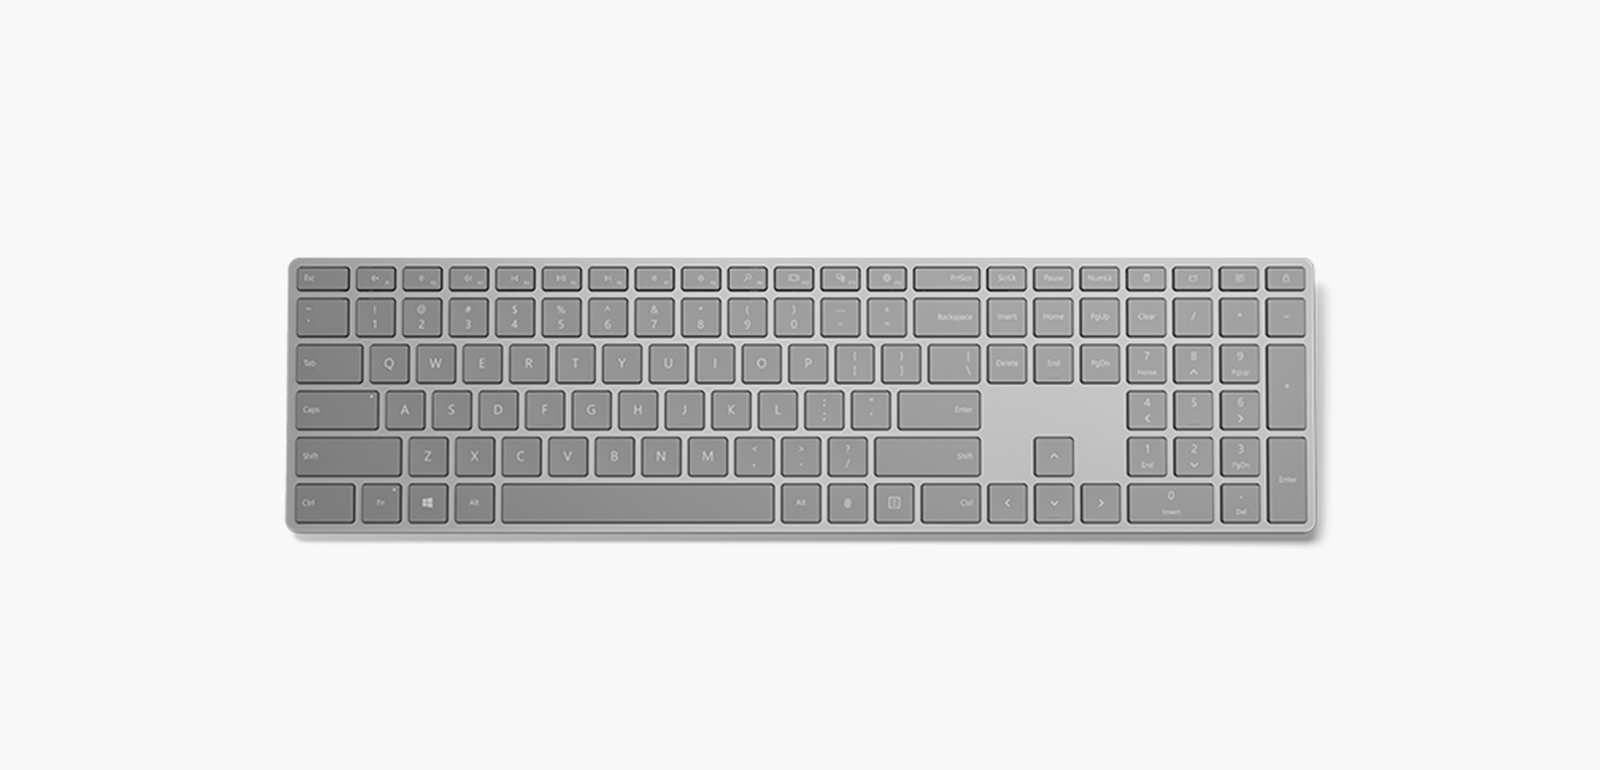 2c4926632d9 Microsoft Modern Keyboard with Fingerprint ID - IMBOLDN